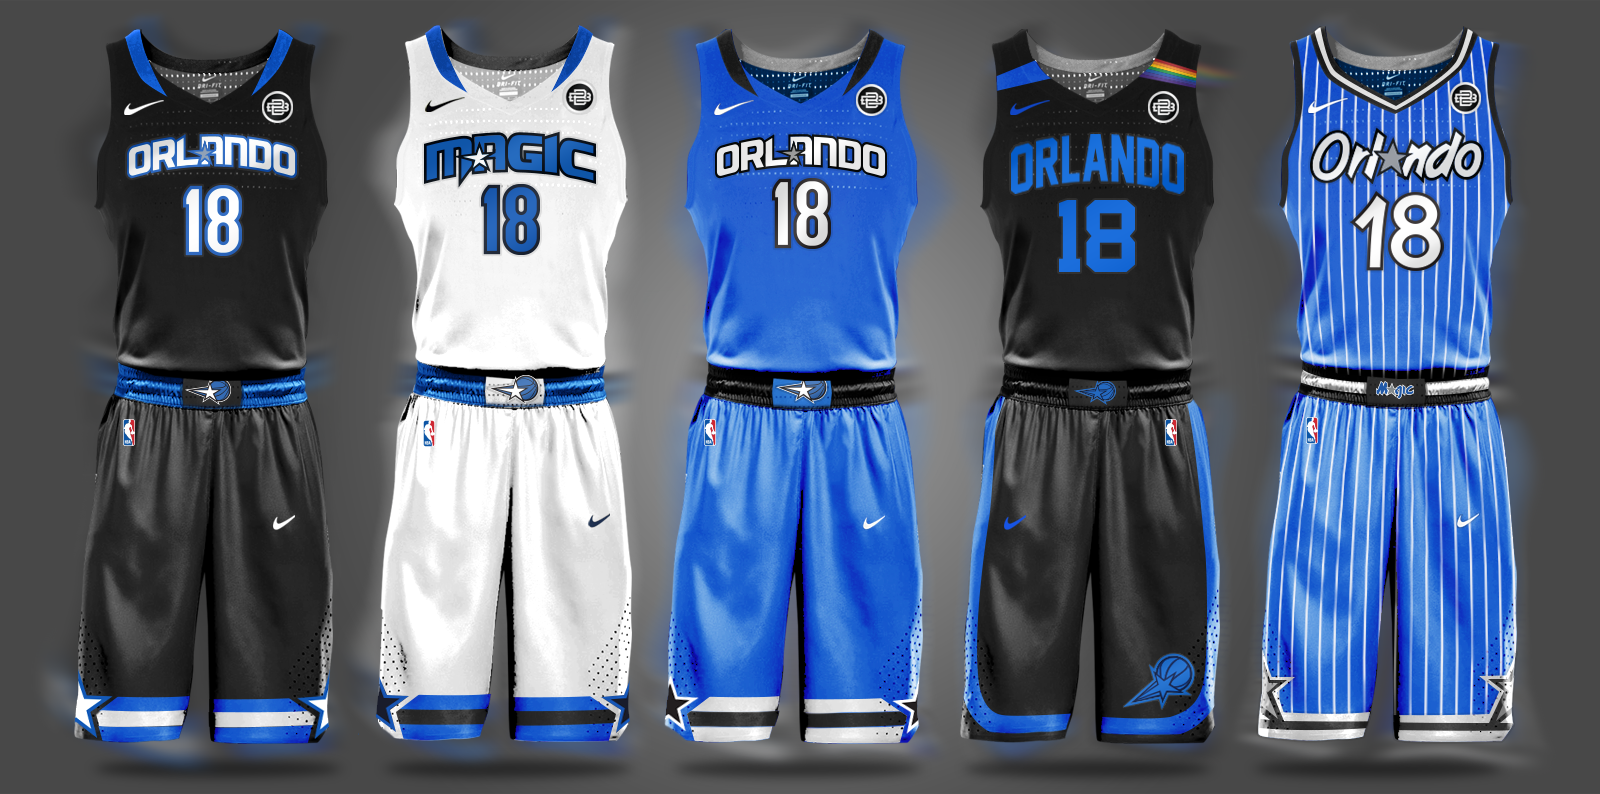 huge selection of 45895 3411e NBA Nike Uniform Concepts - I Am Brian Begley